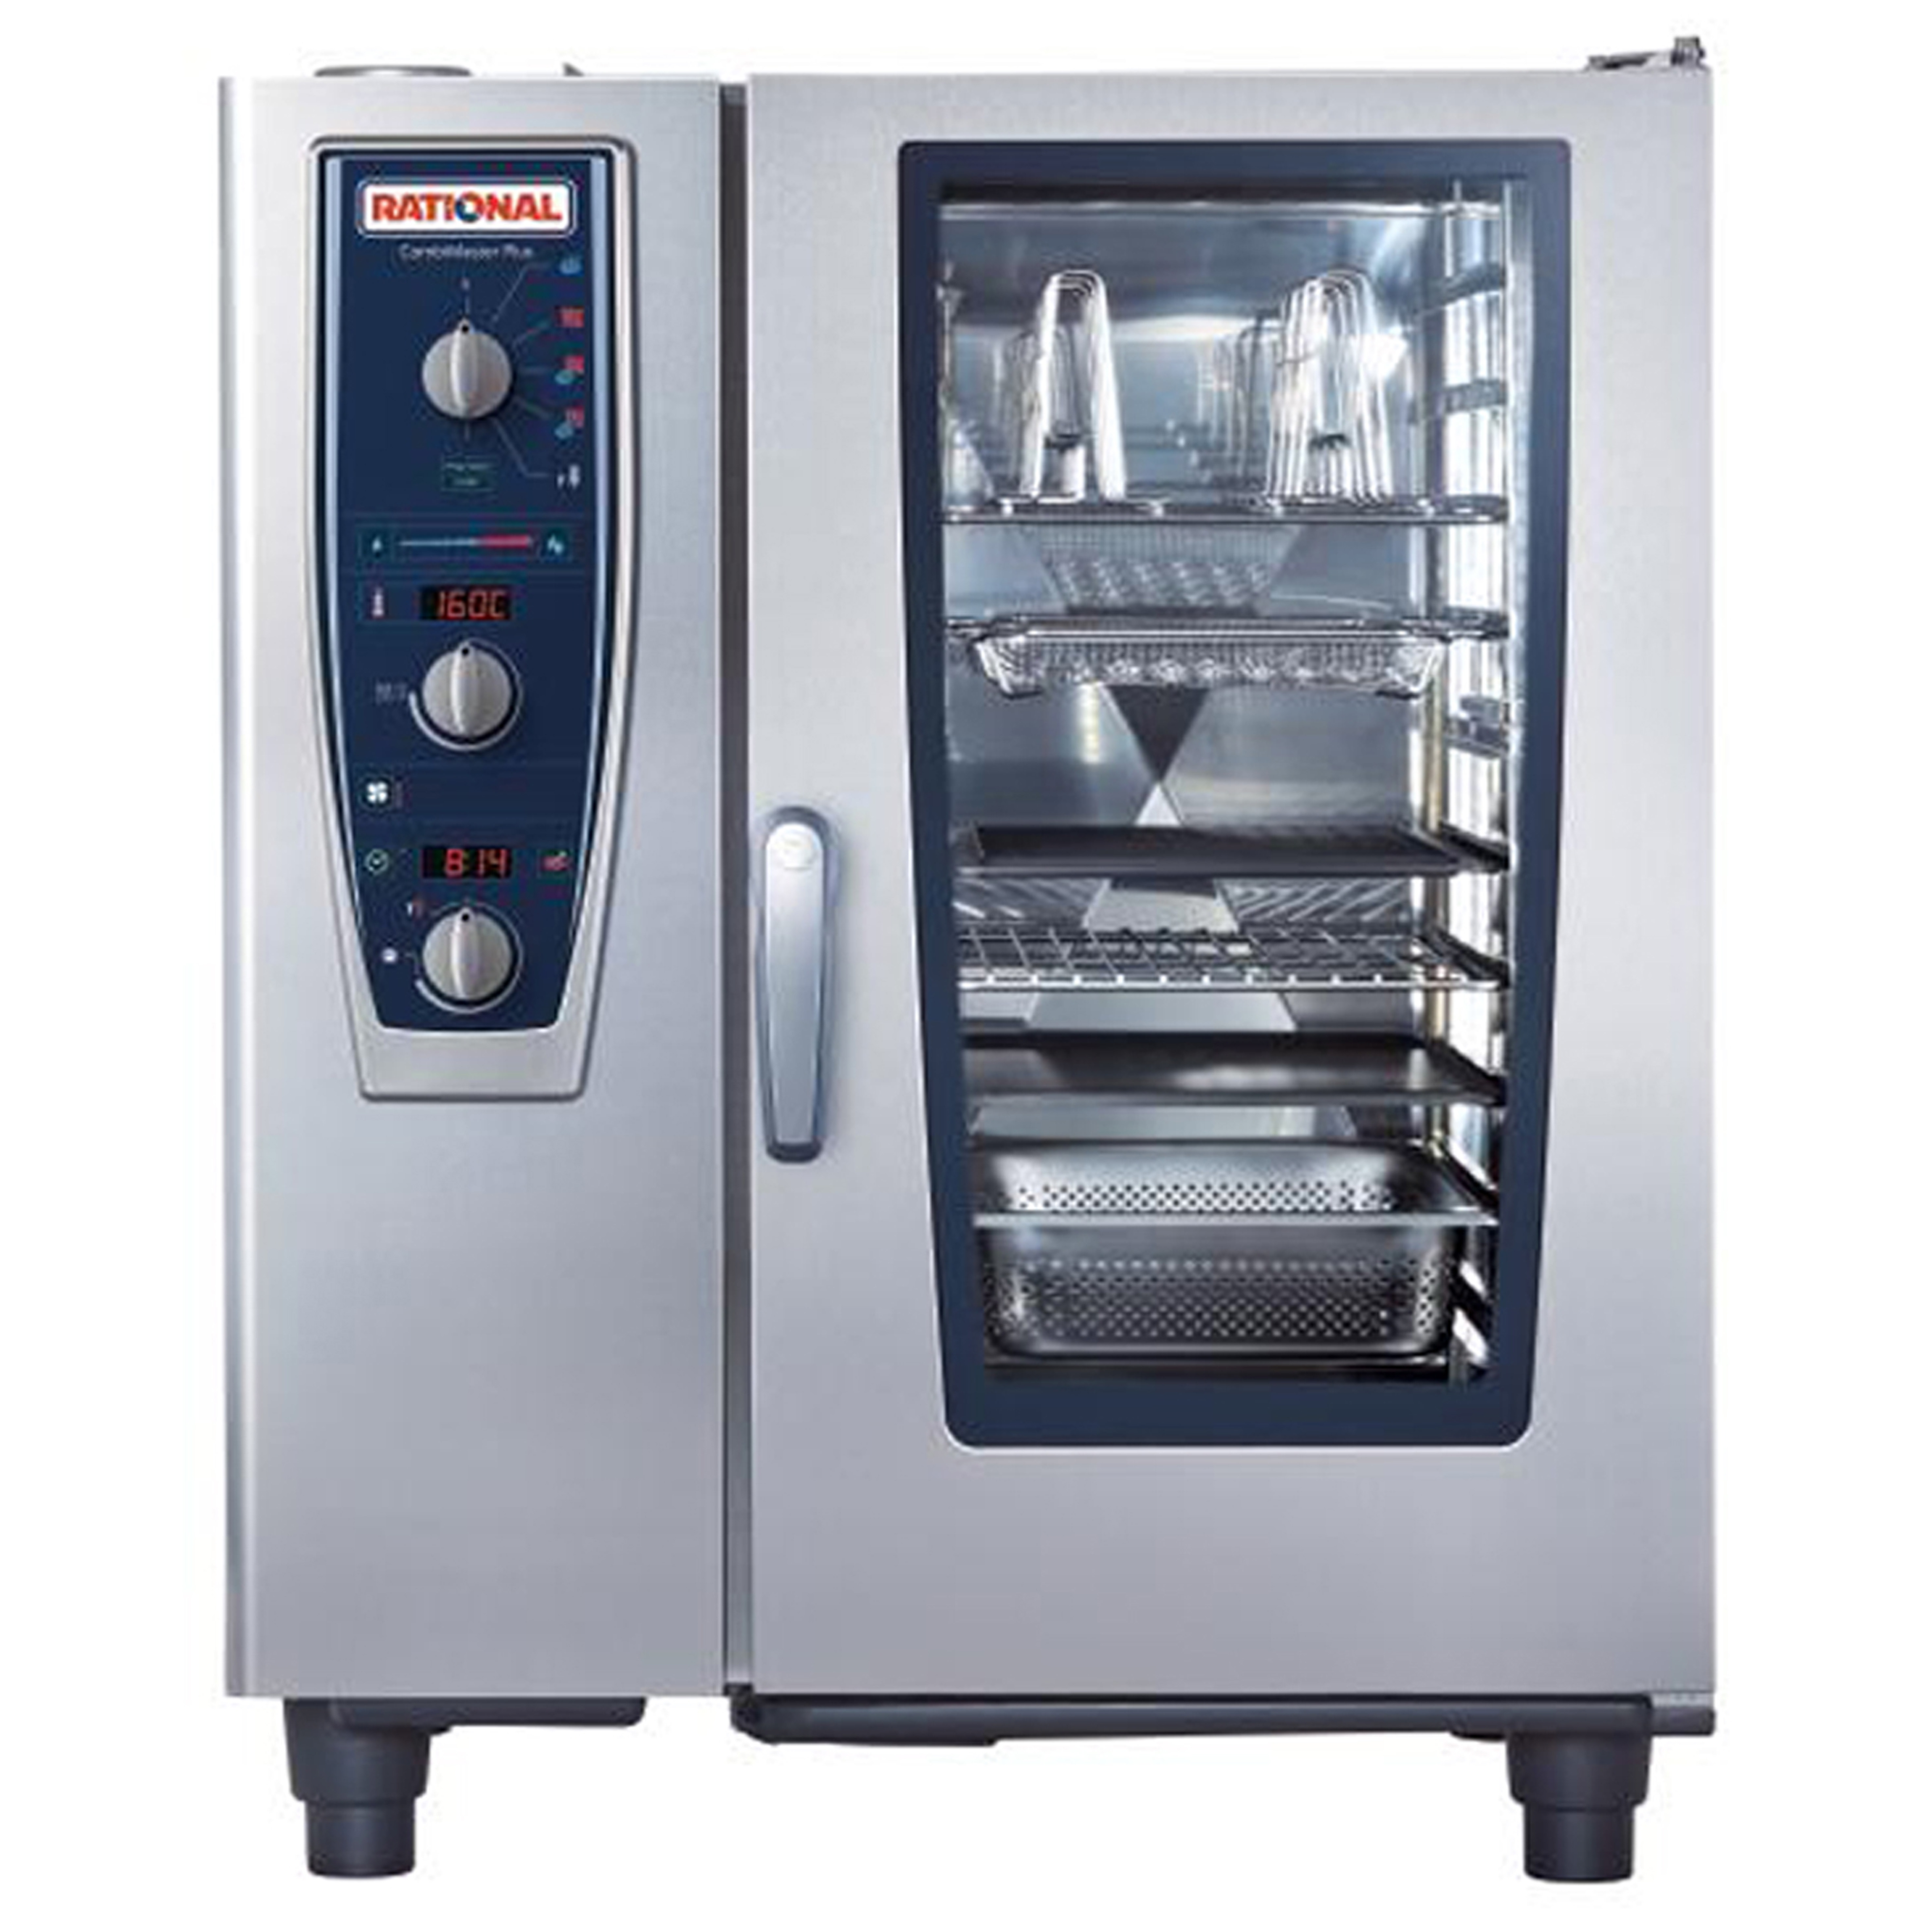 RATIONAL B119206.19E202 combi oven, gas